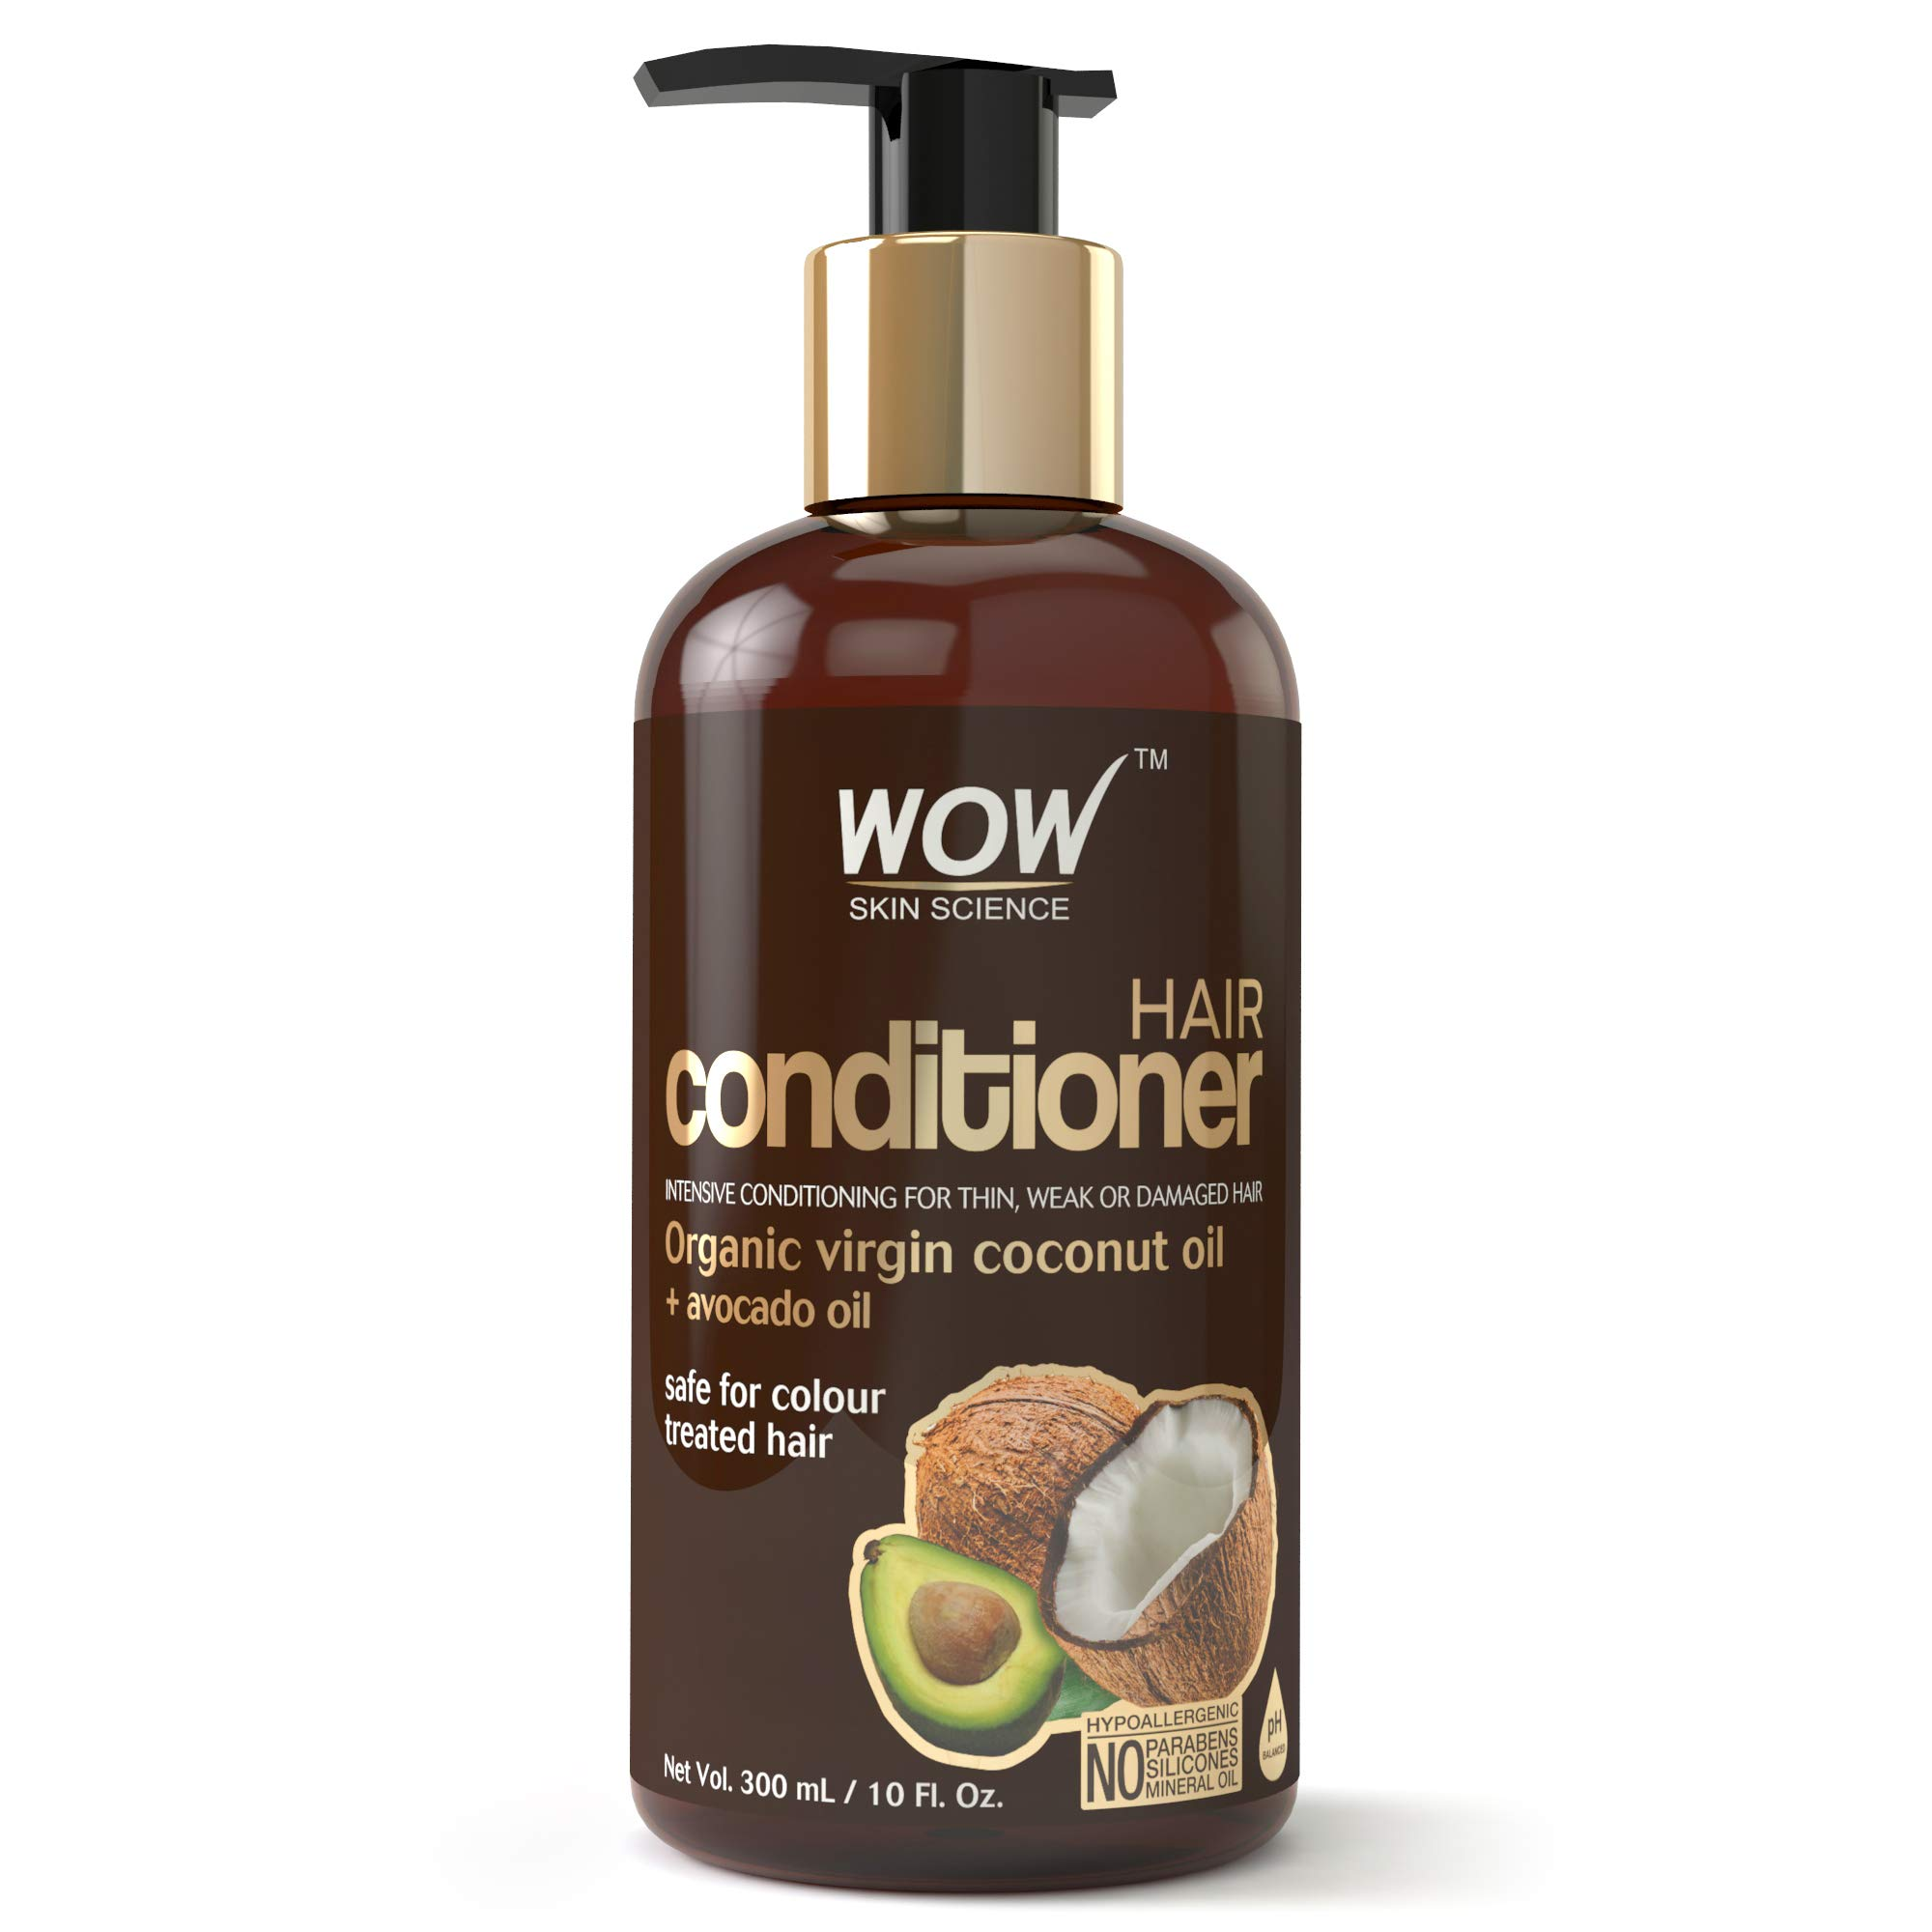 WOW Hair Conditioner - Deep Hair Conditioning for Dry Thin & Damaged Hair - Enriched with Coconut, Avocado Oil, Moroccan Argan Oil, Jojoba Oil - Vitamins B5 & E - Paraben and Sulfate Free - 10 Fl Oz by WOW Skin Science